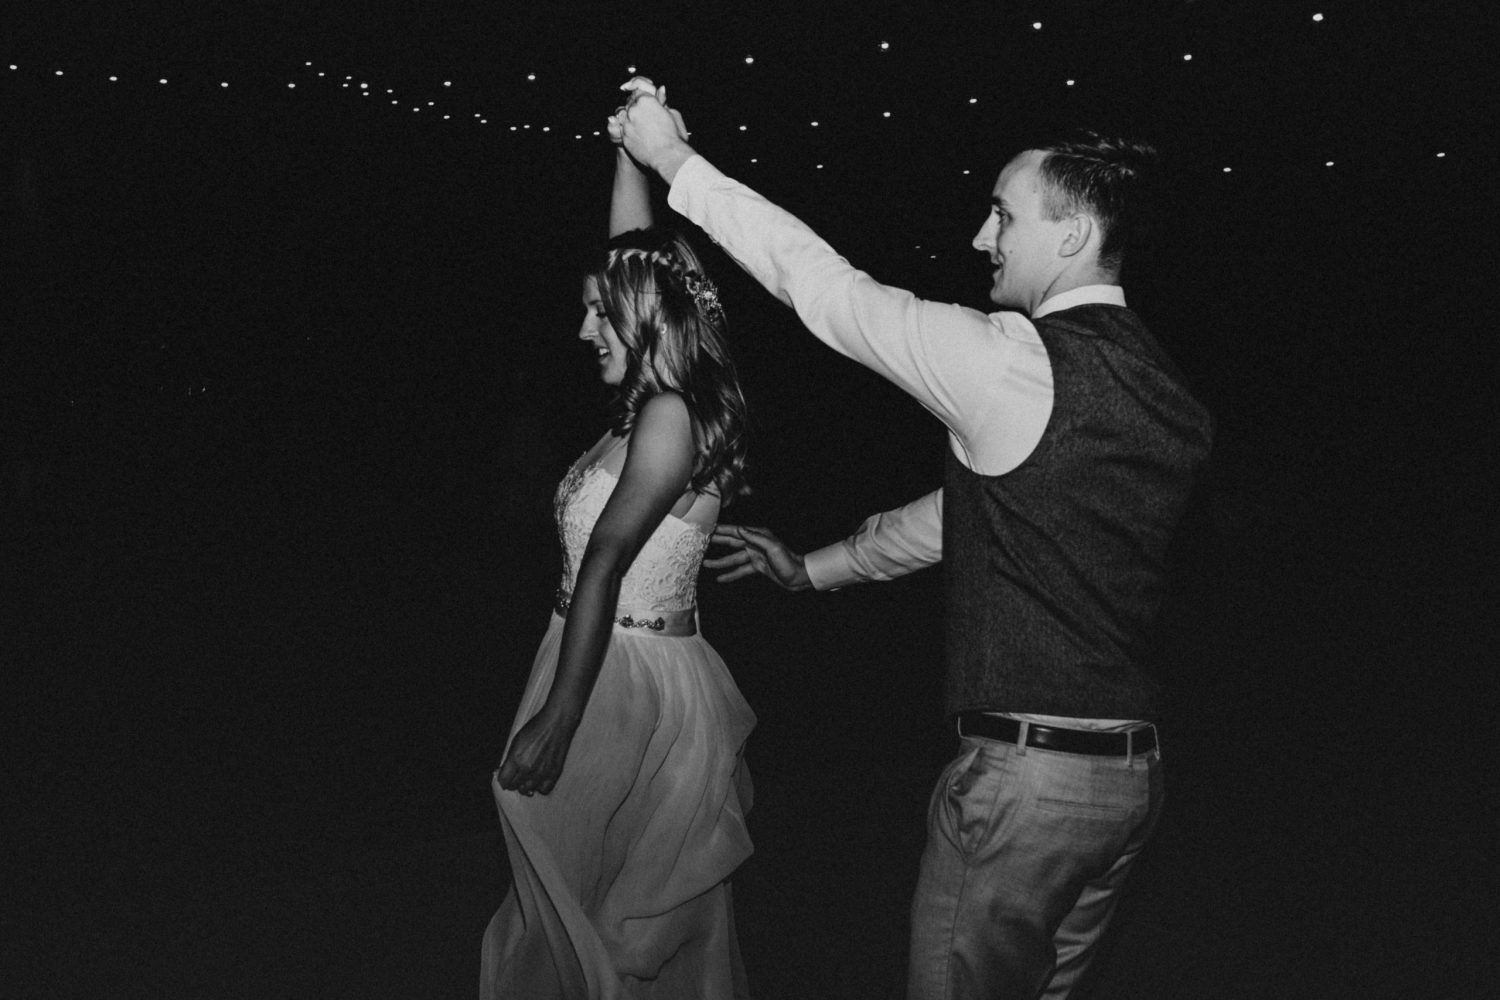 Bride and groom first dance black and white, image by Fatima Elreda Photo